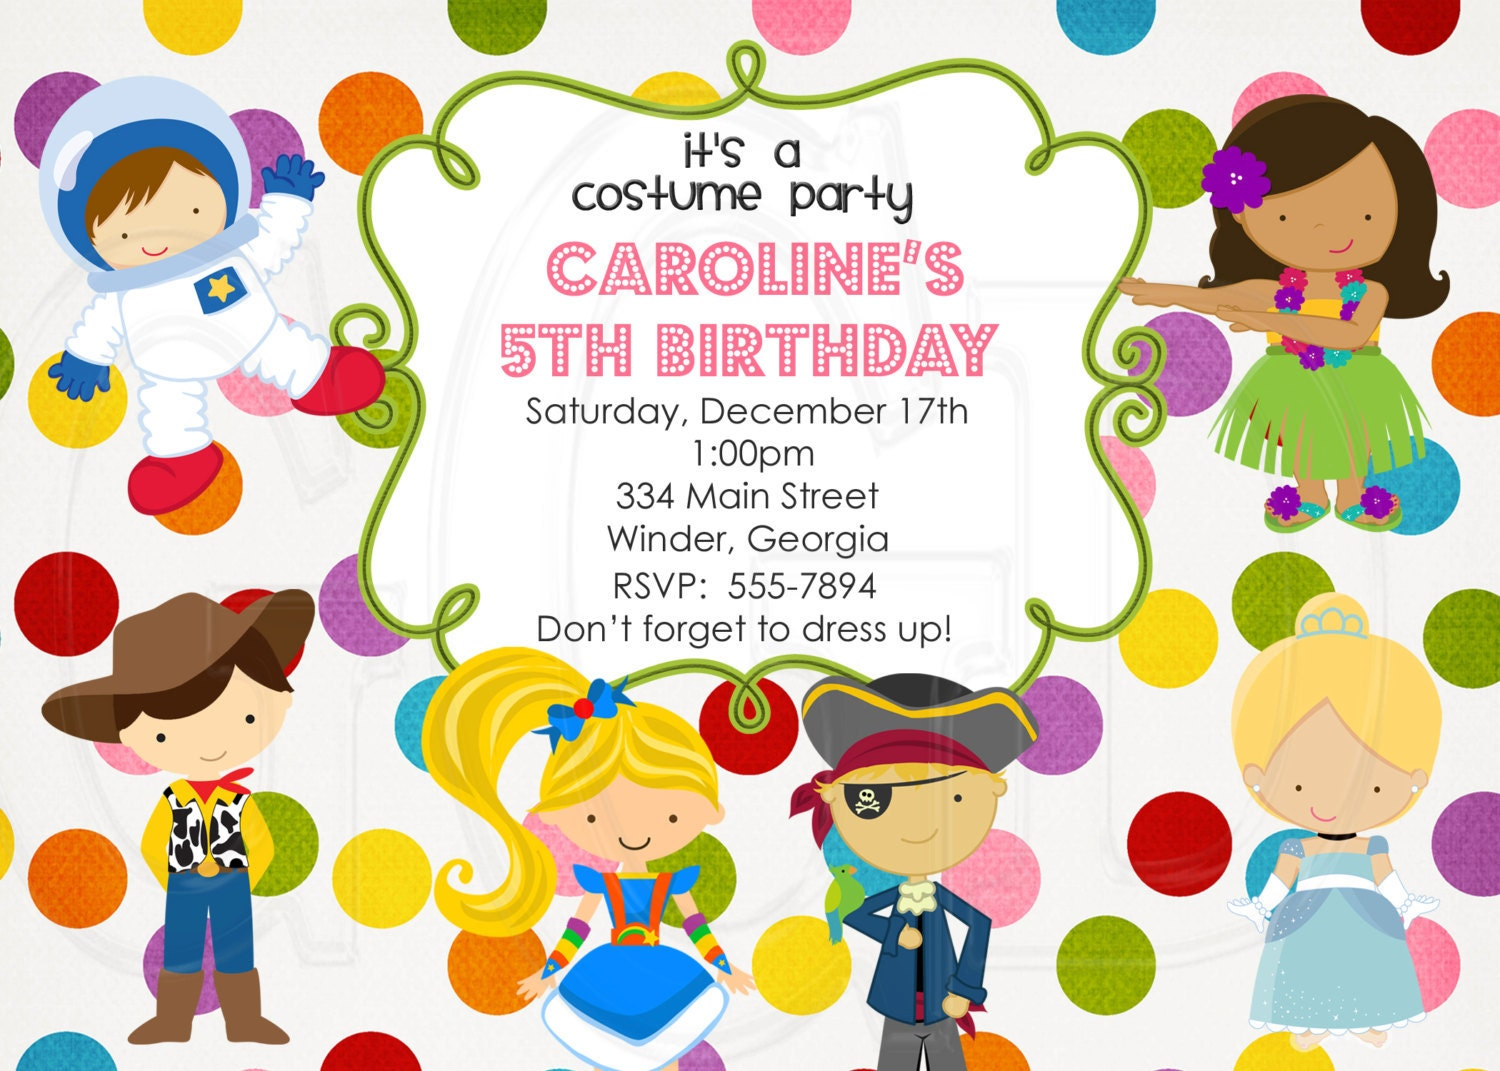 Costume Party Invitation dress up party non halloween